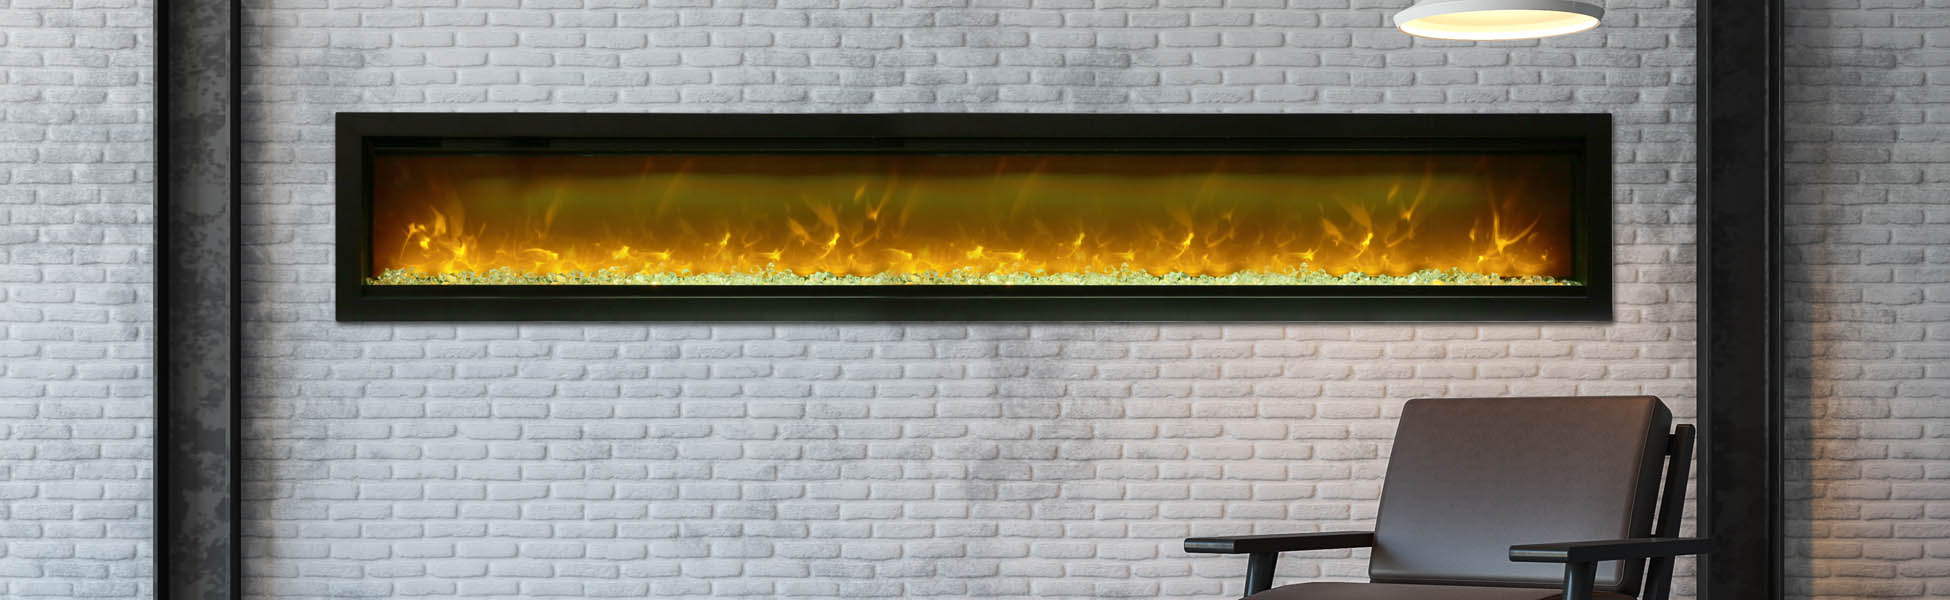 electric fireplaces for sale online